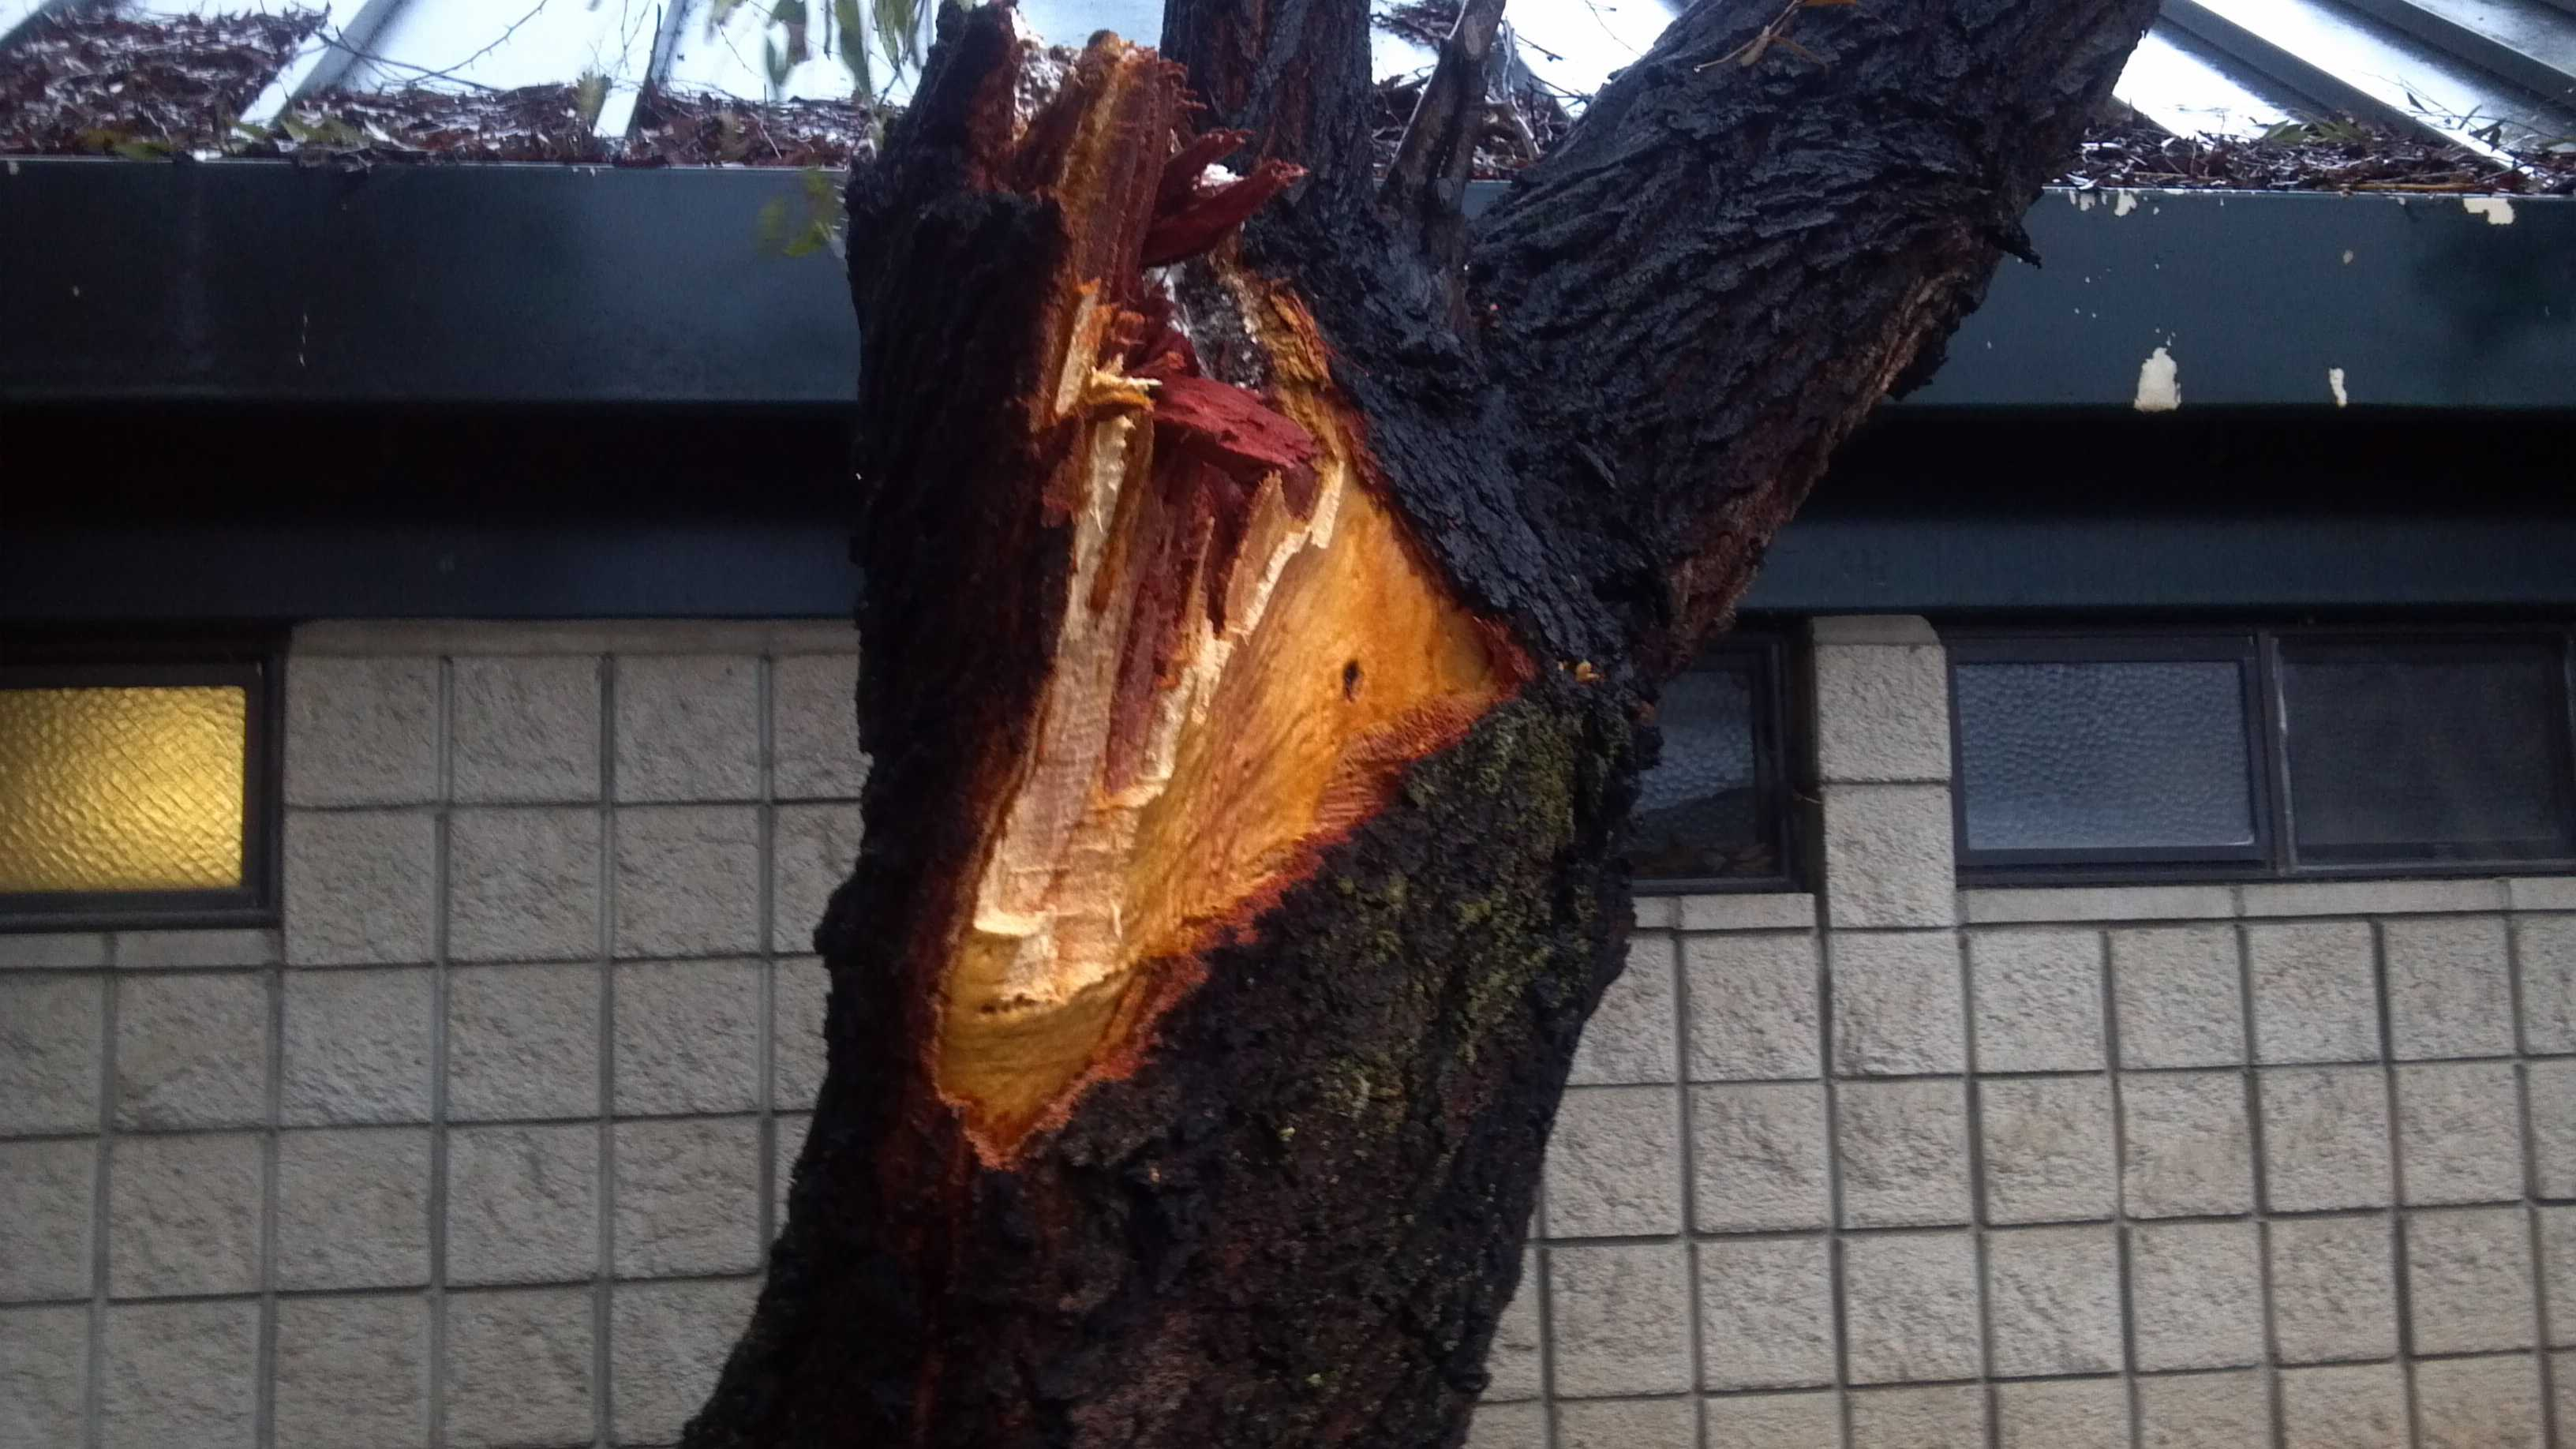 This tree came down in the area of Butterfield and Folsom, in Rancho Cordova (Nov. 21, 2012).